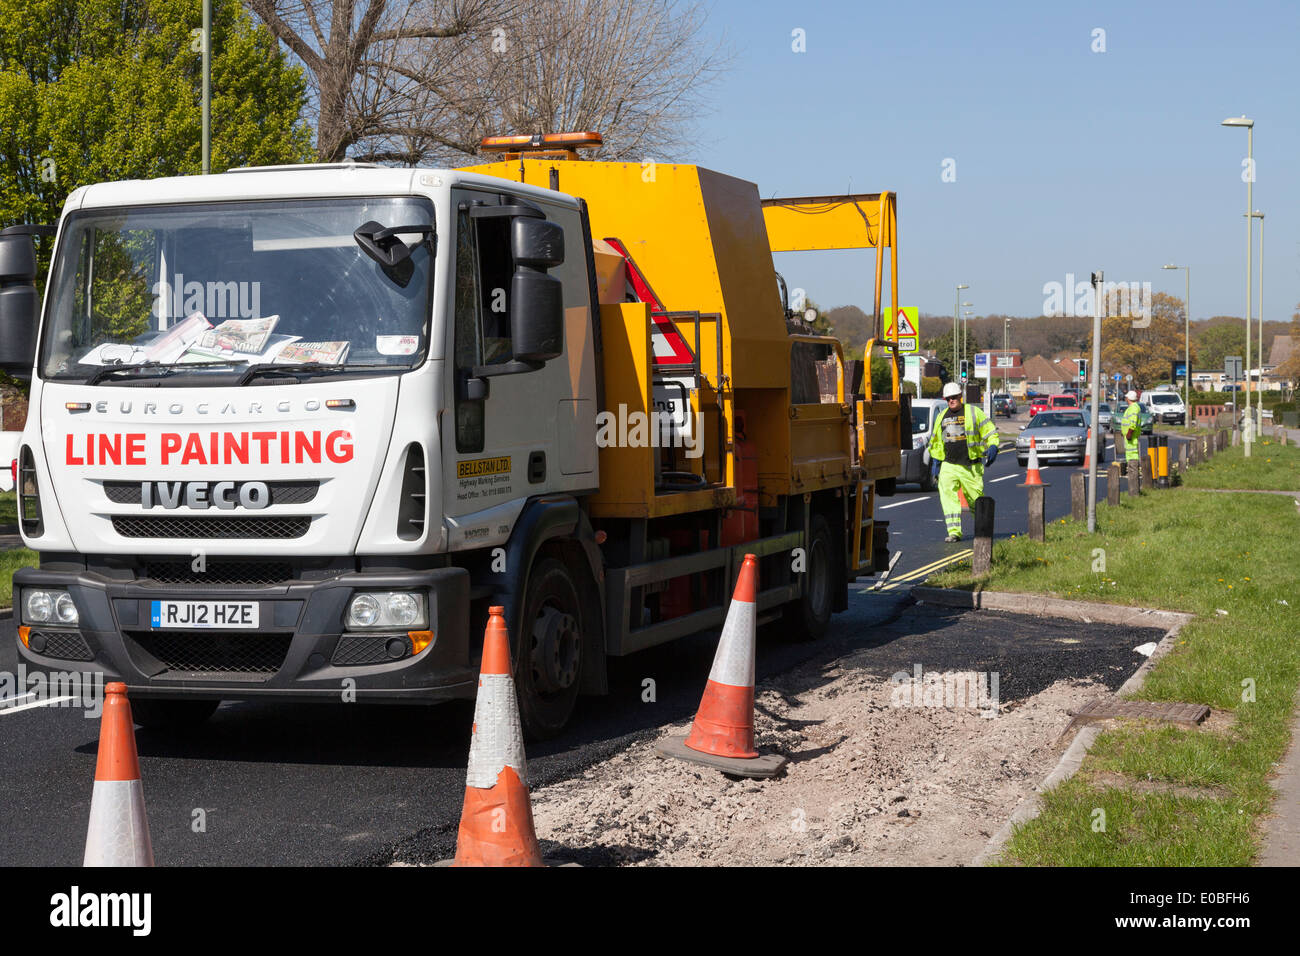 Workmen operating behind Line Painting truck. - Stock Image